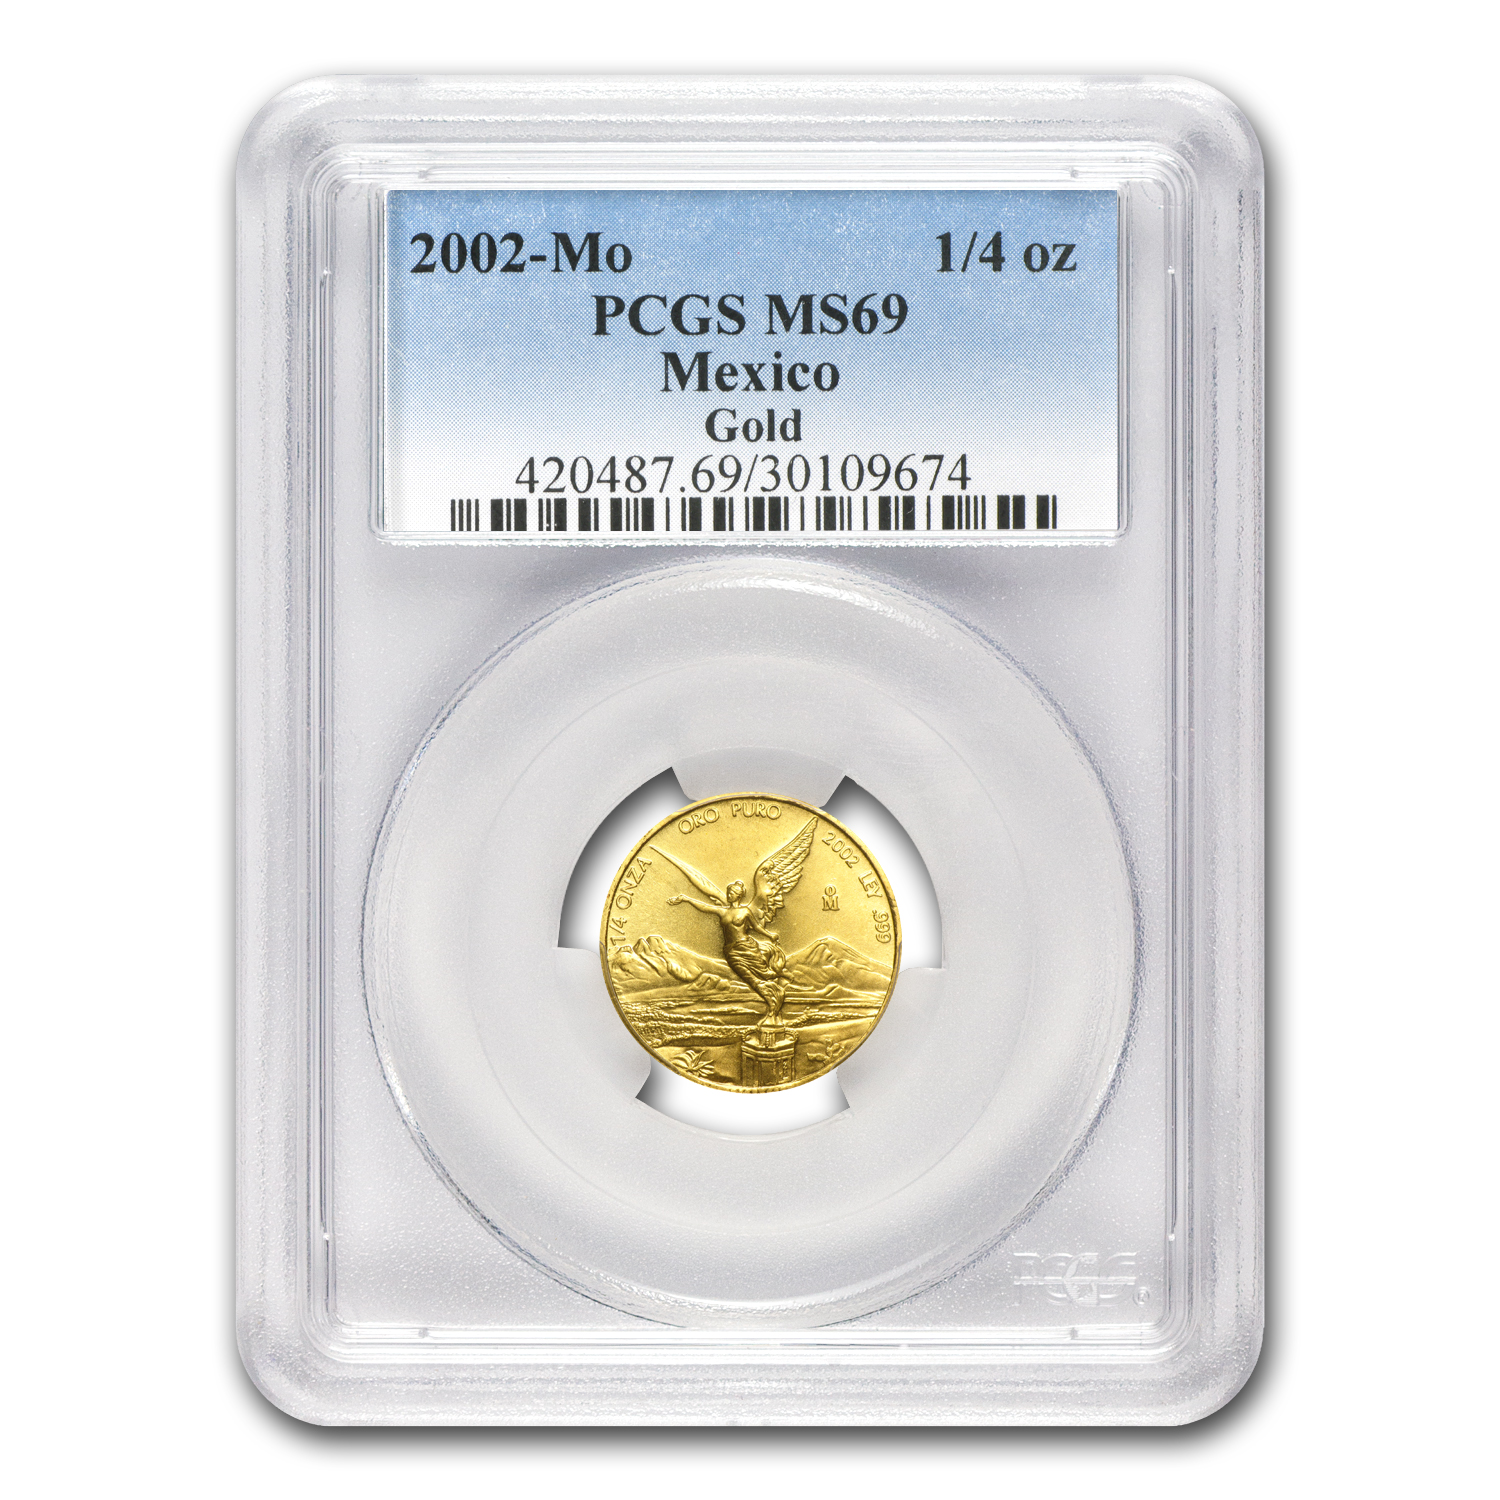 2002 Mexico 1/4 oz Gold Libertad MS-69 PCGS